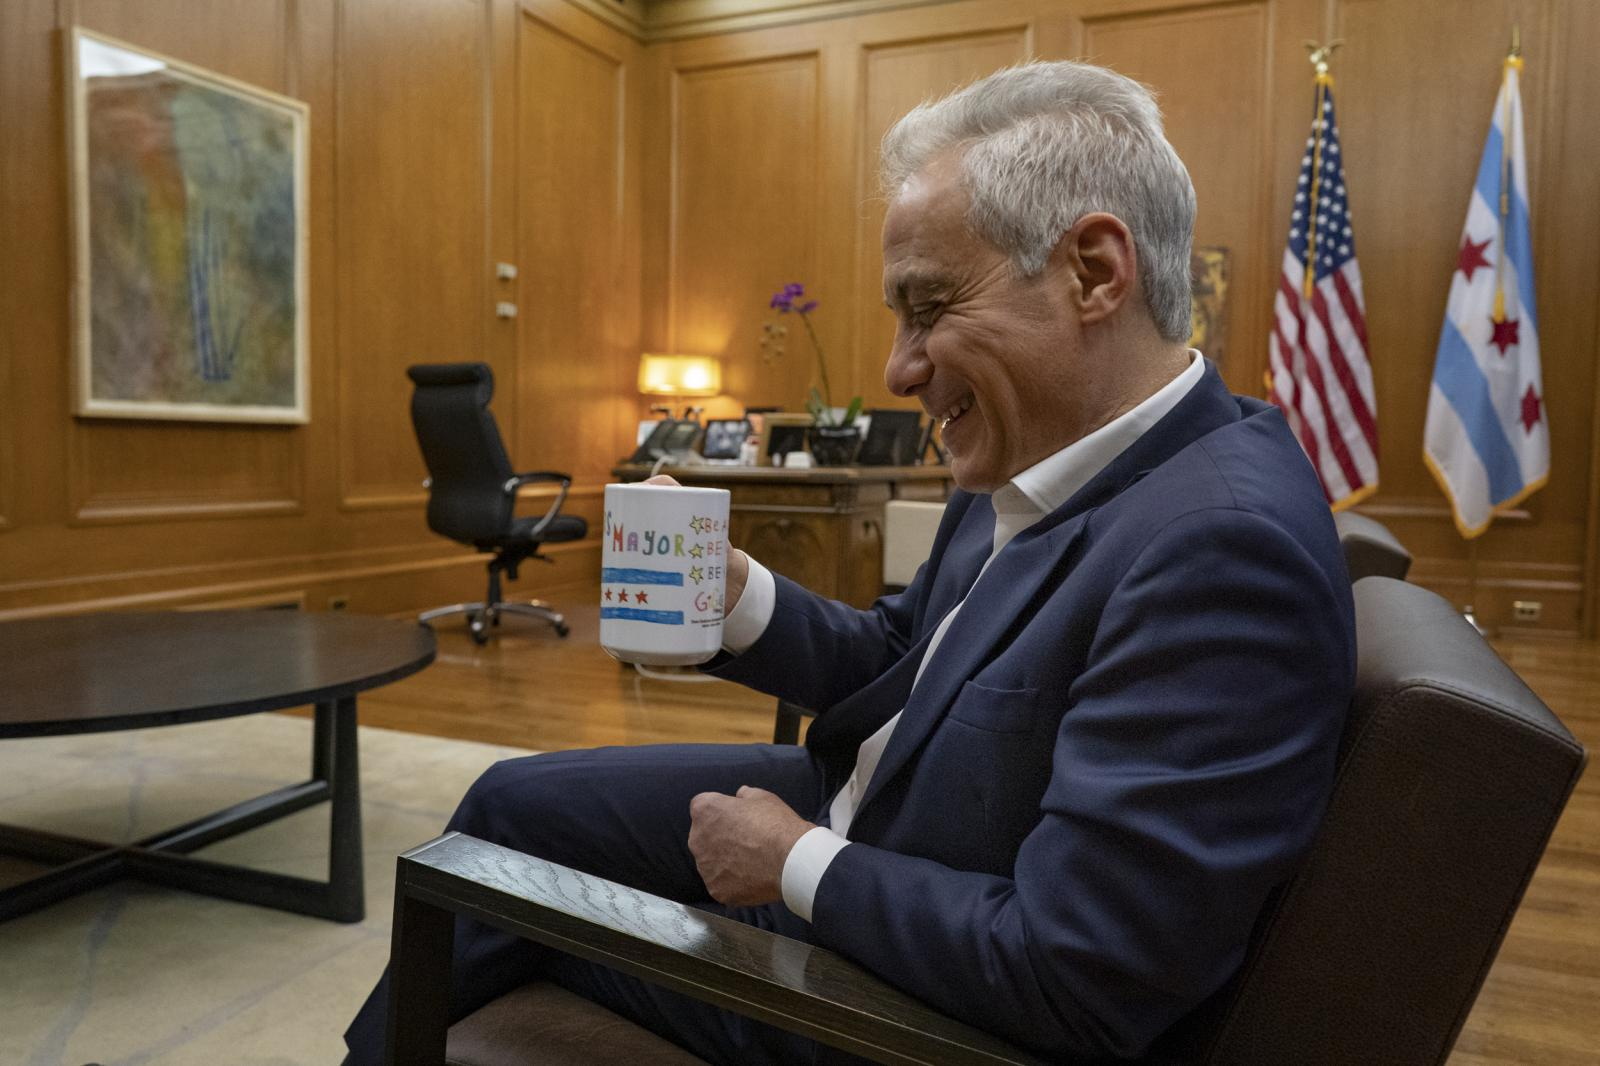 Former Chicago Mayor Rahm Emanuel drinks tea during an interview with the Washington Post's Lori Aratani in his office at City Hall in Chicago on April 24, 2019.